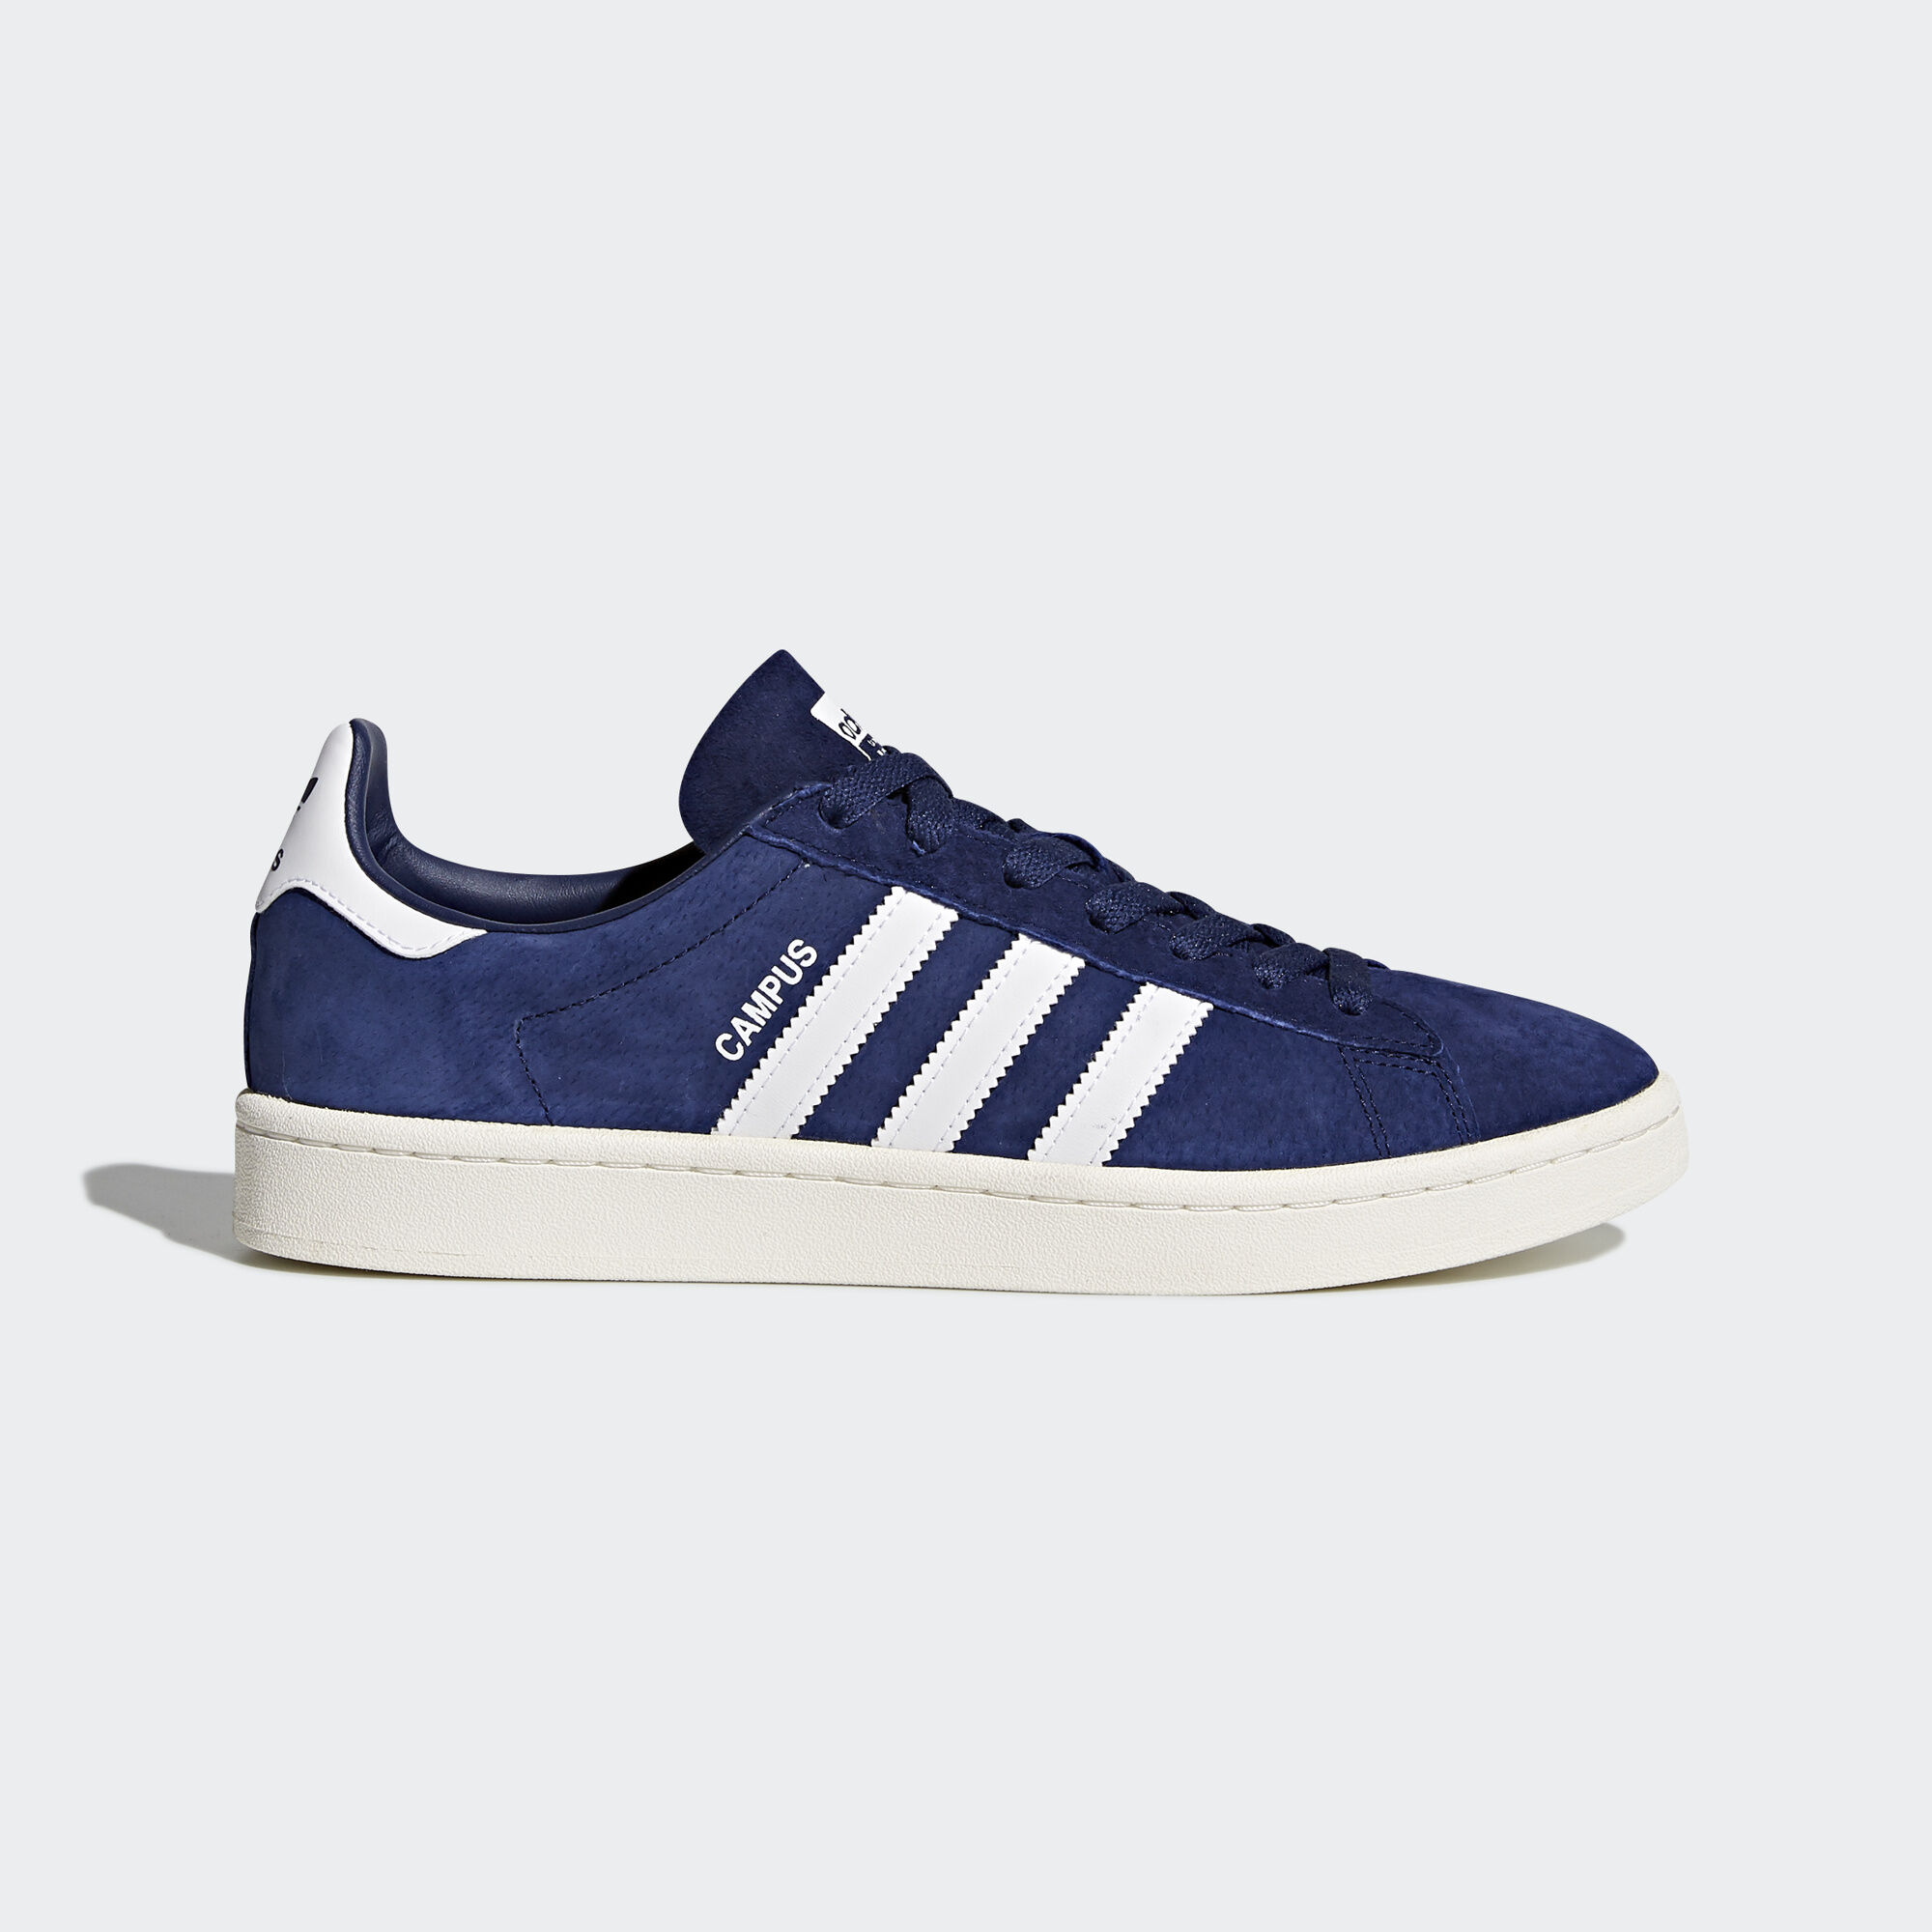 adidas campus shoes blue adidas asia middle east. Black Bedroom Furniture Sets. Home Design Ideas